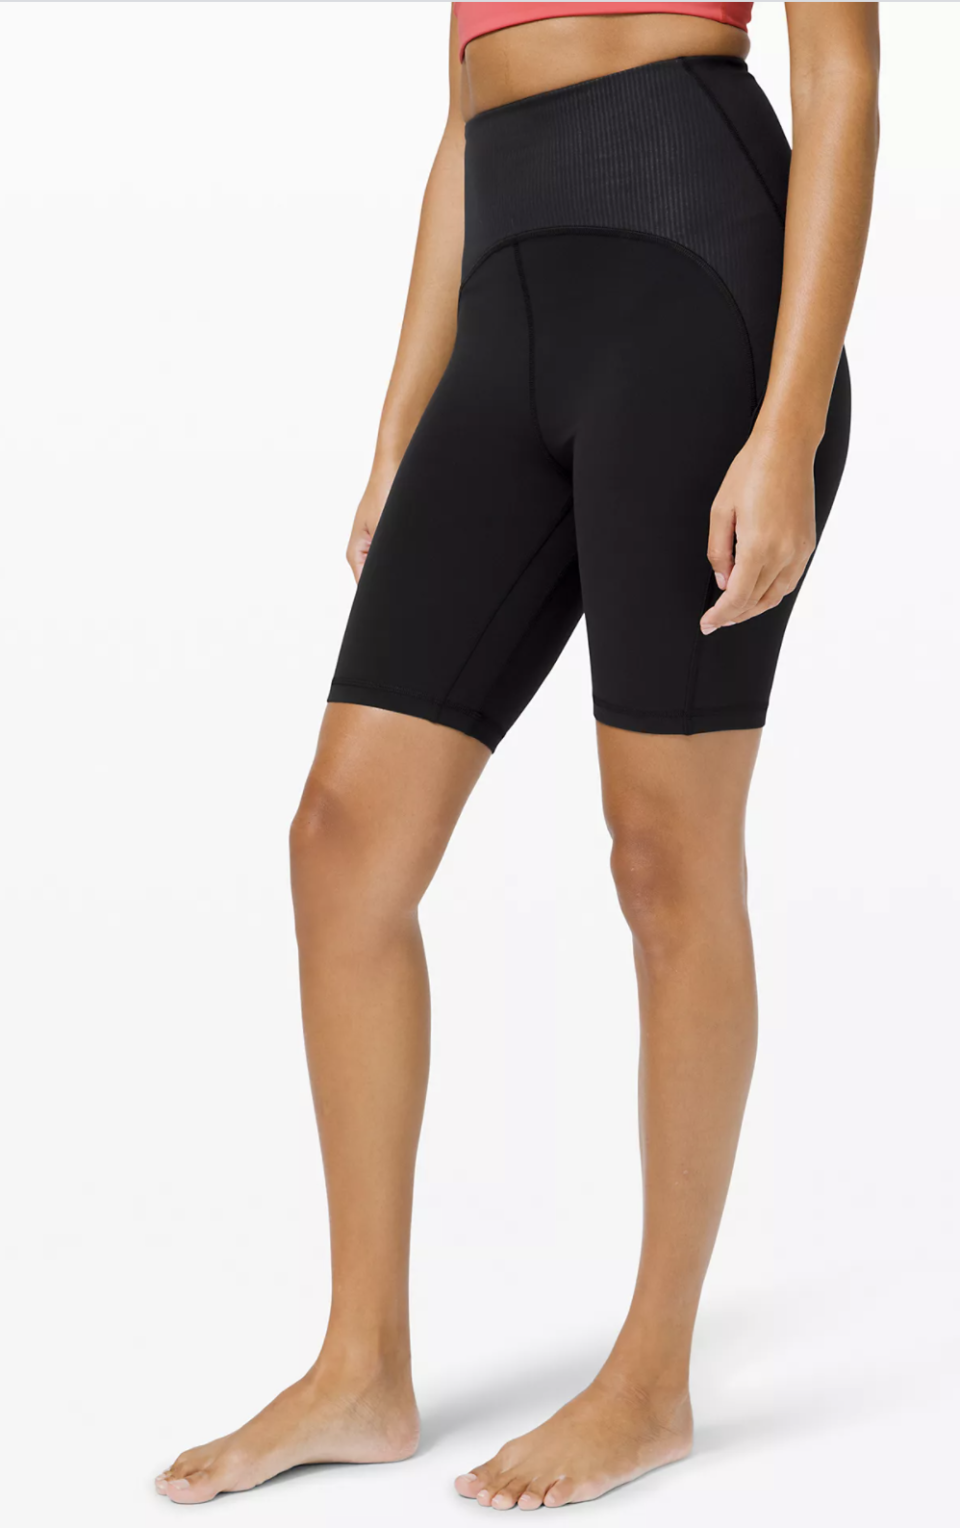 Blissful Bend Super High Rise Short 8